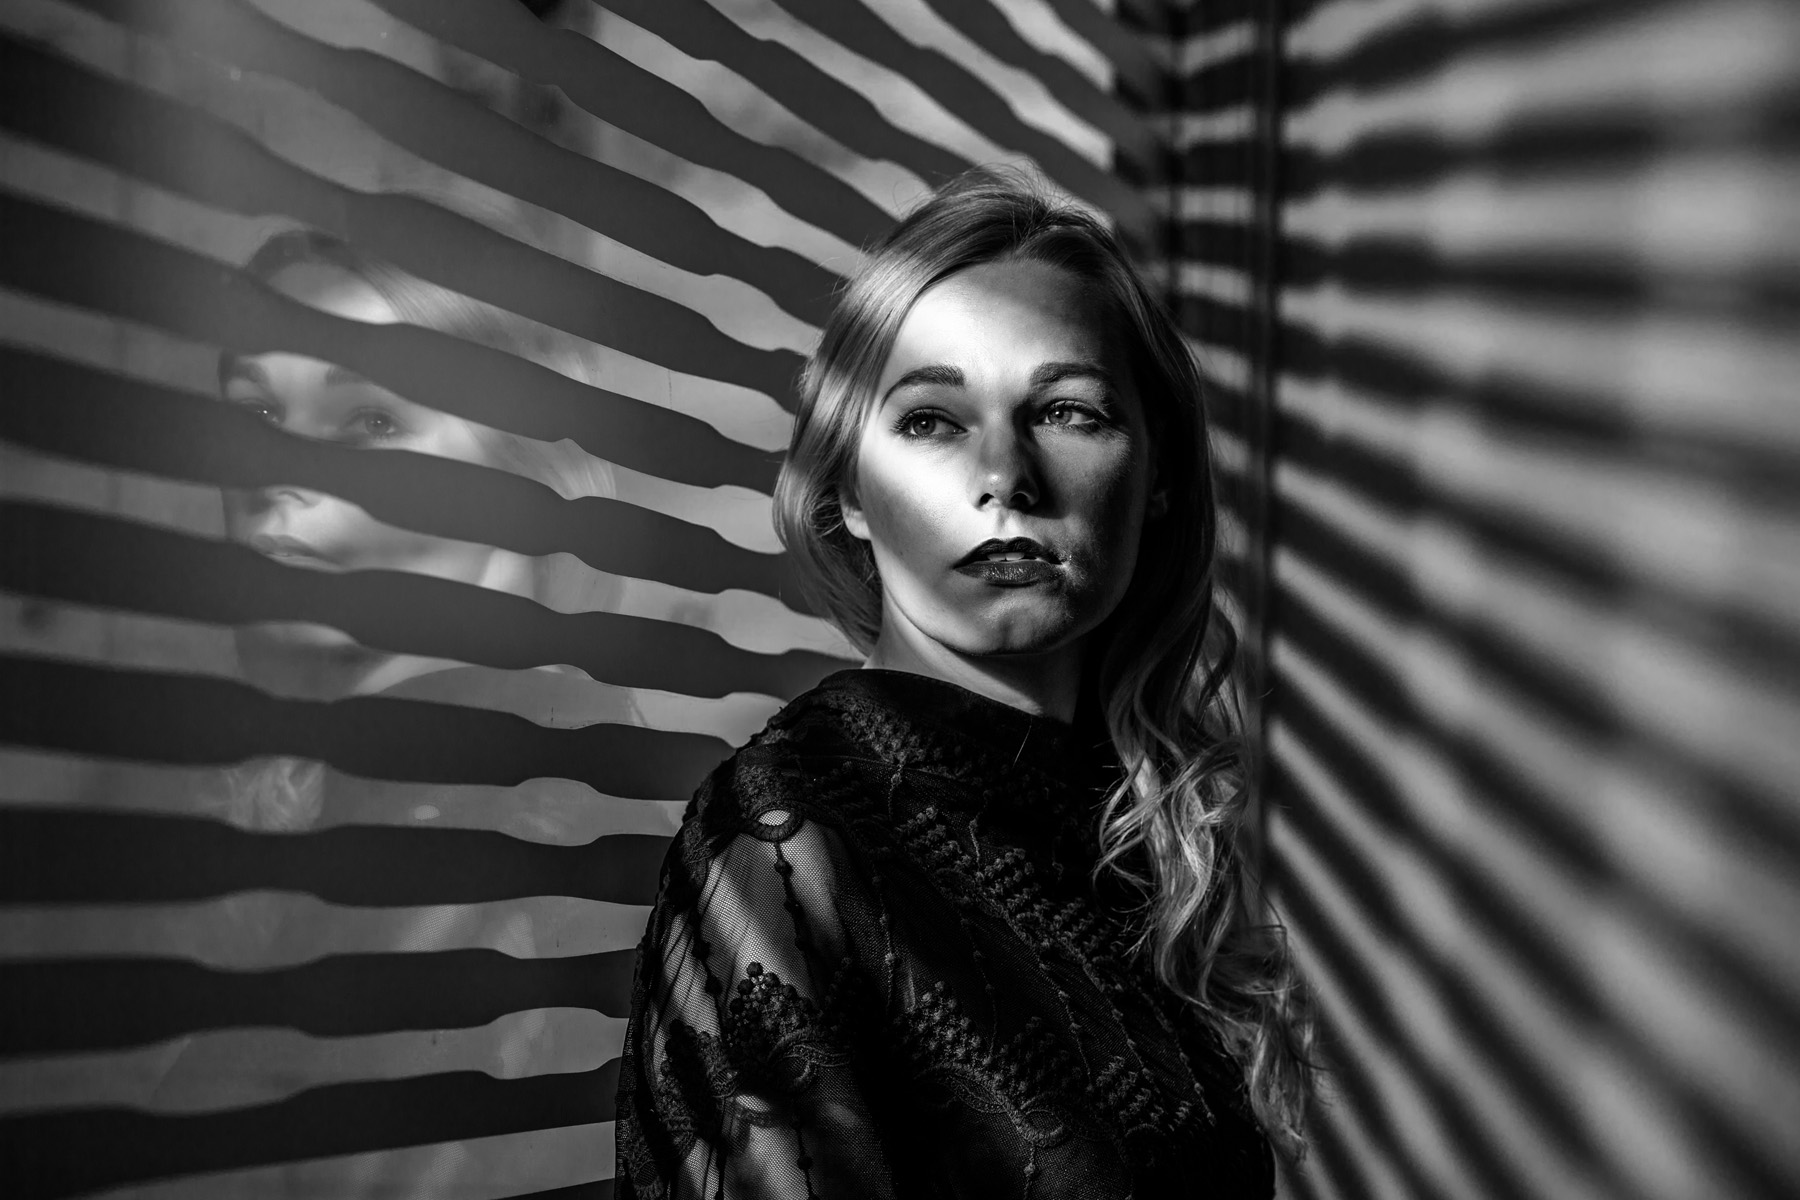 The Art Of Film Noir Portraits